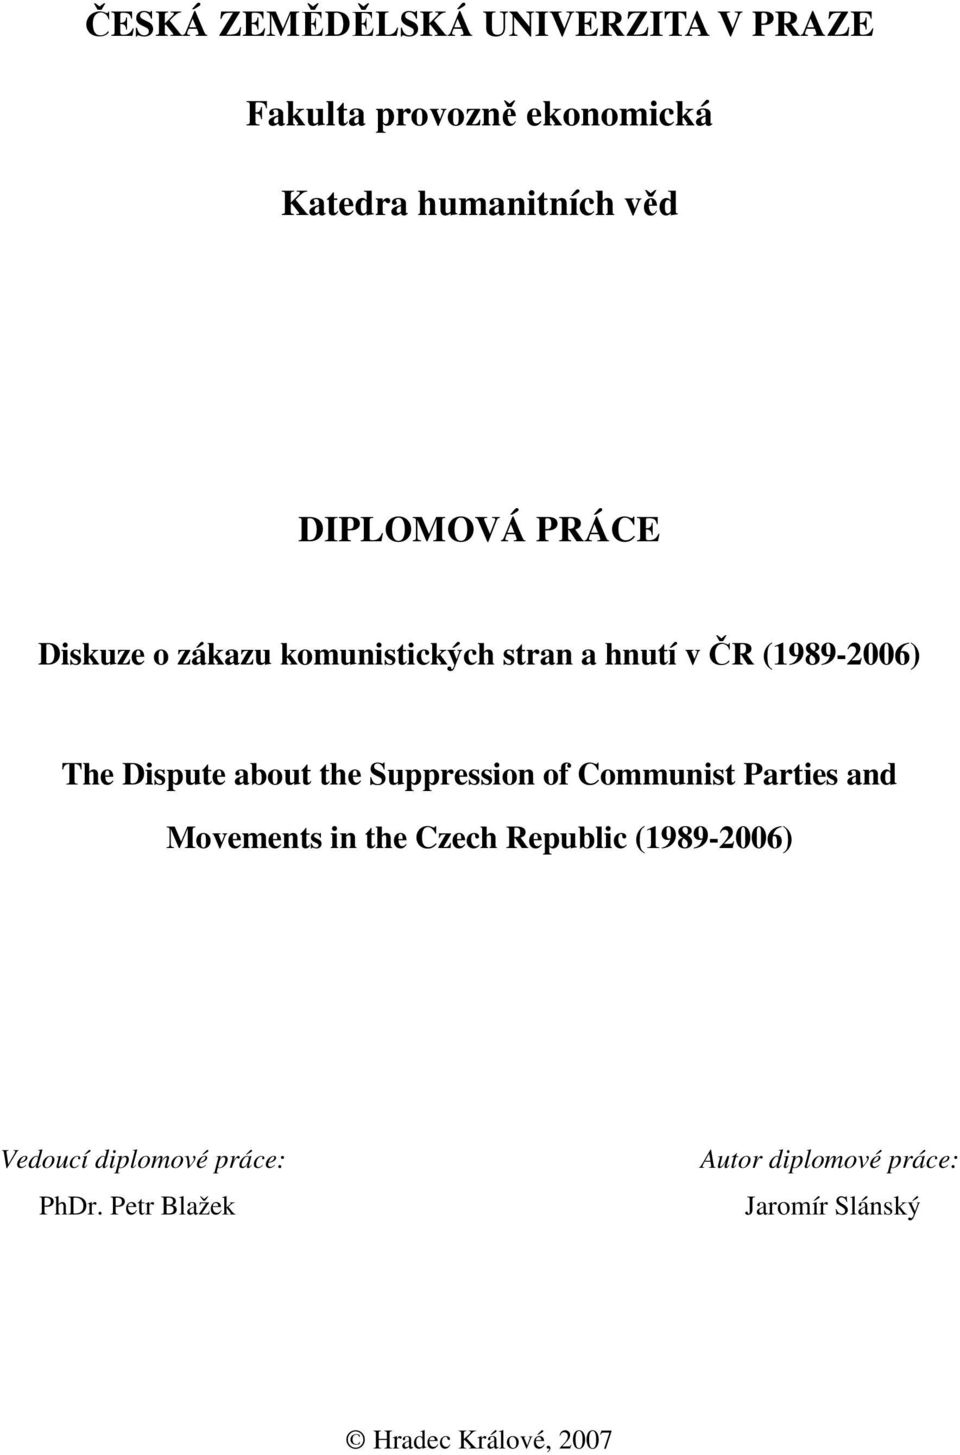 about the Suppression of Communist Parties and Movements in the Czech Republic (1989-2006)